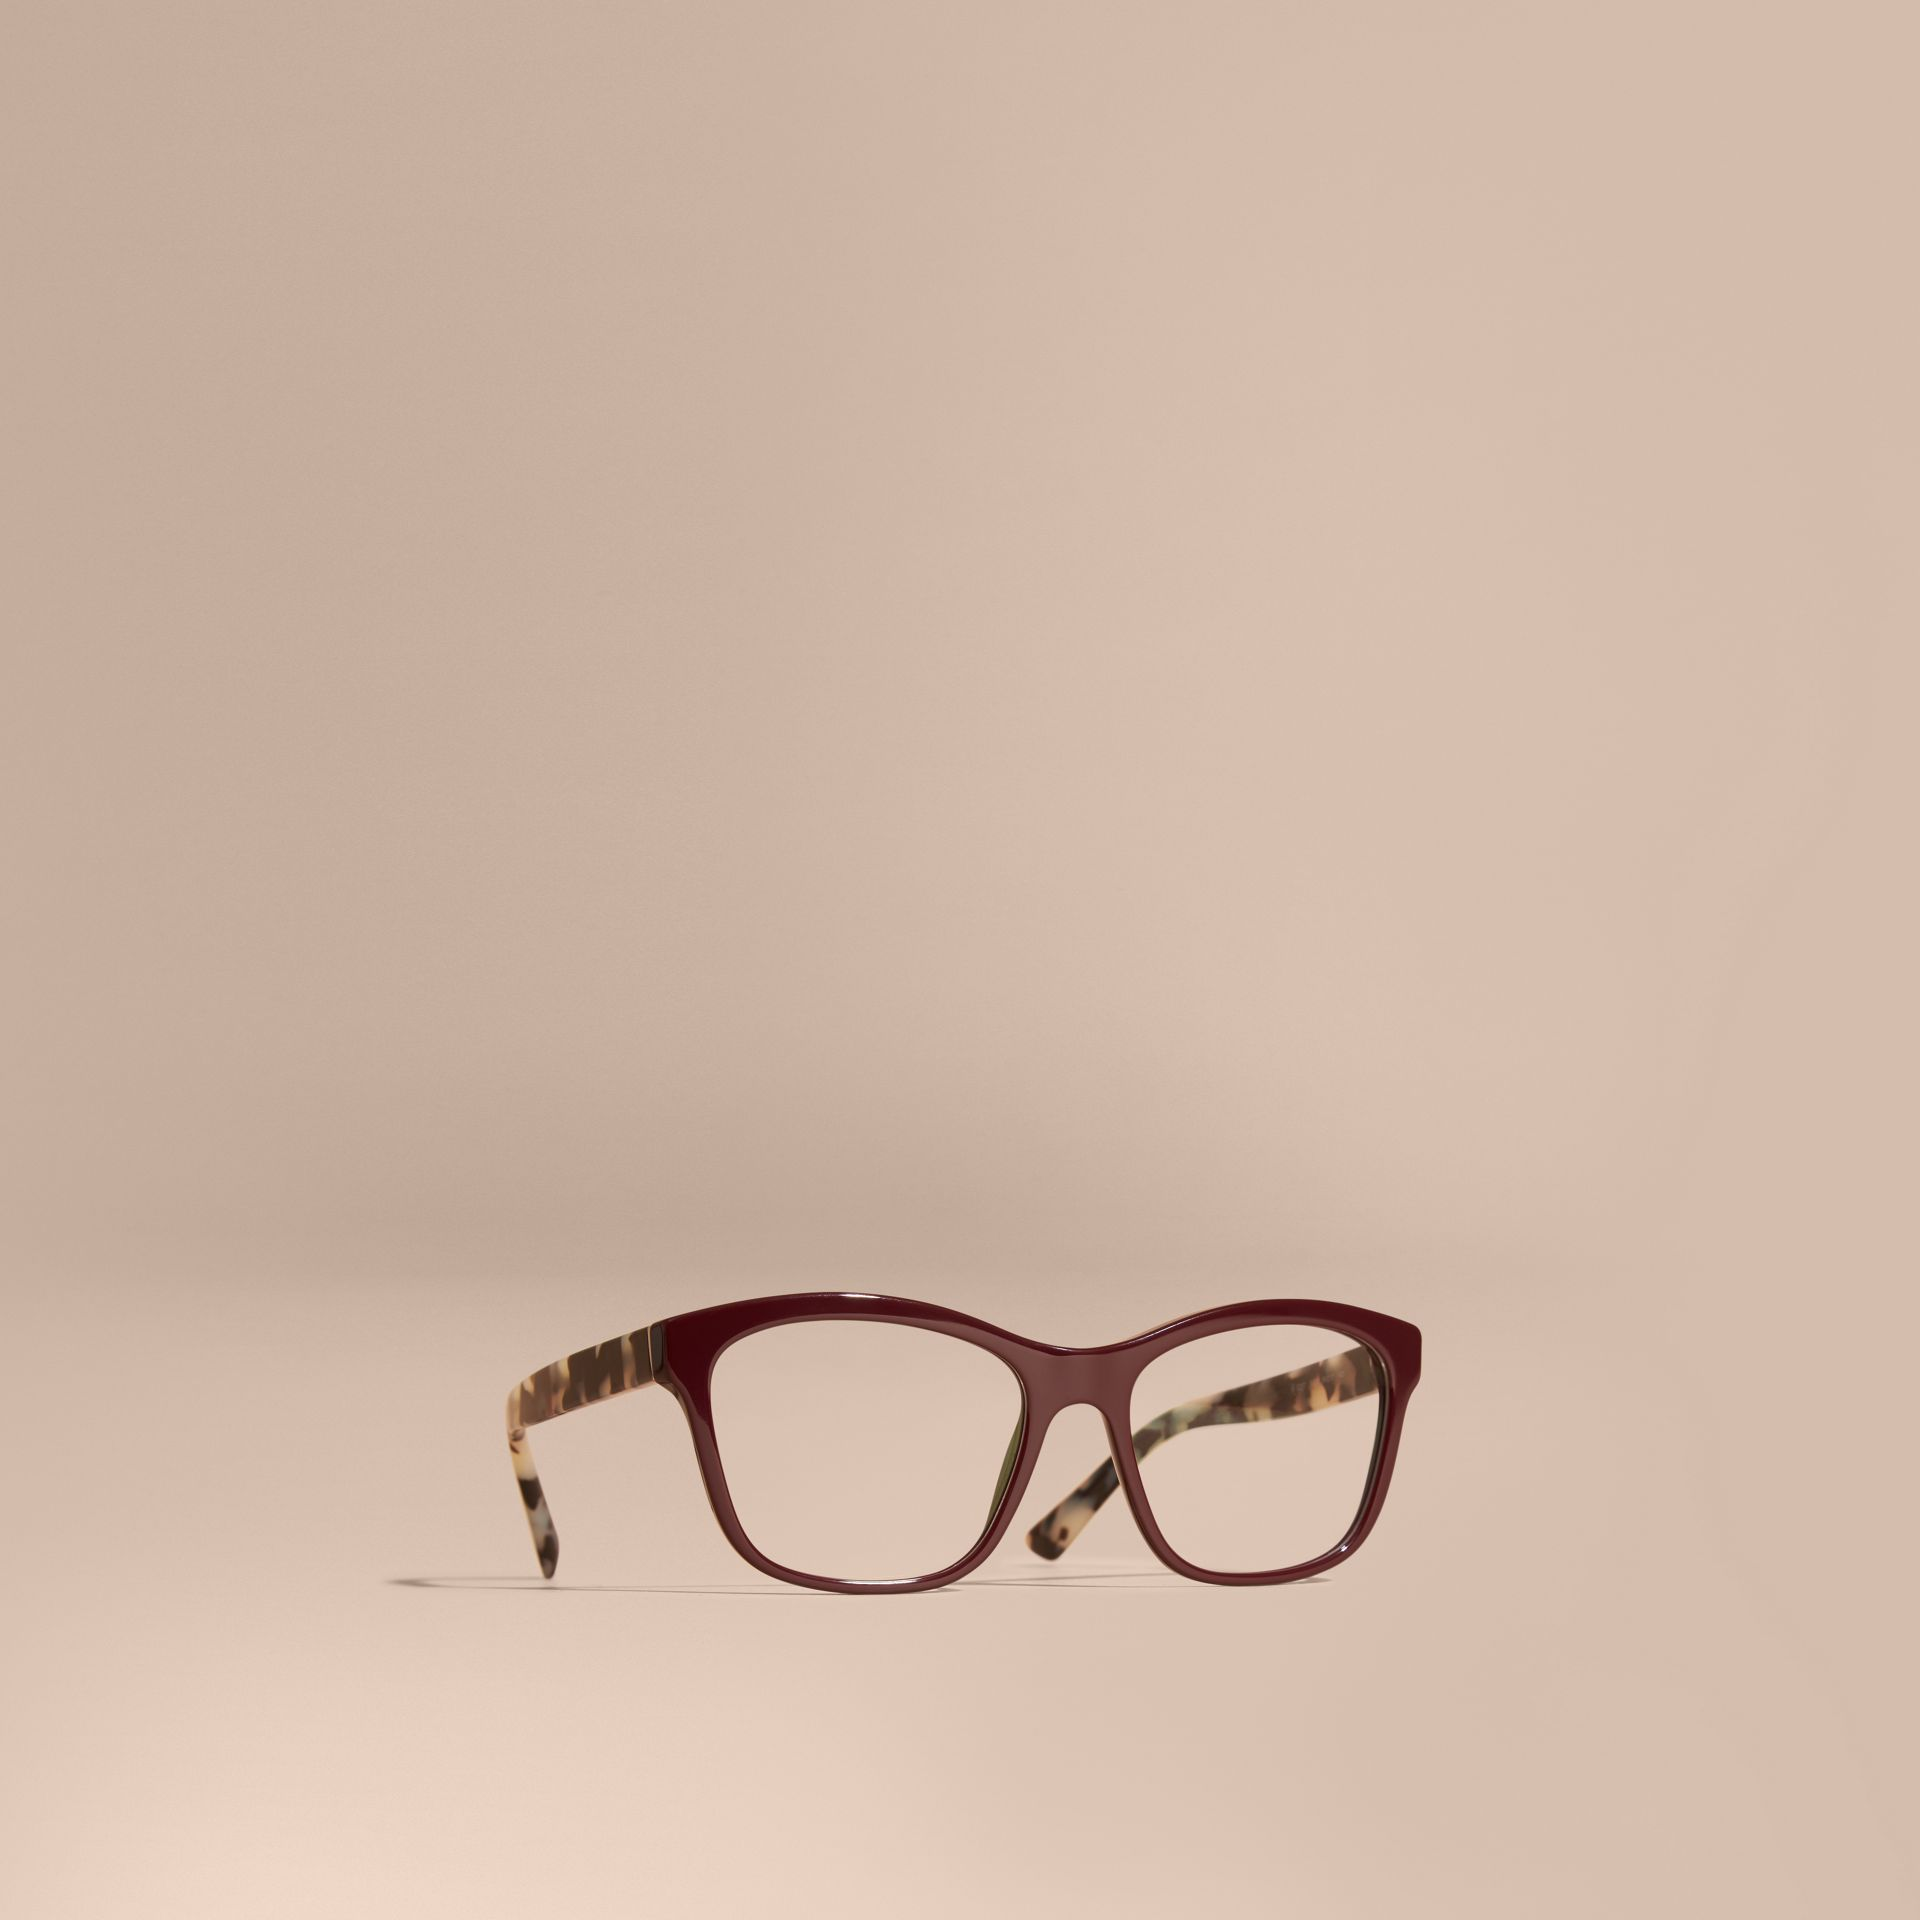 Oxblood Check Detail Square Optical Frames Oxblood - gallery image 1